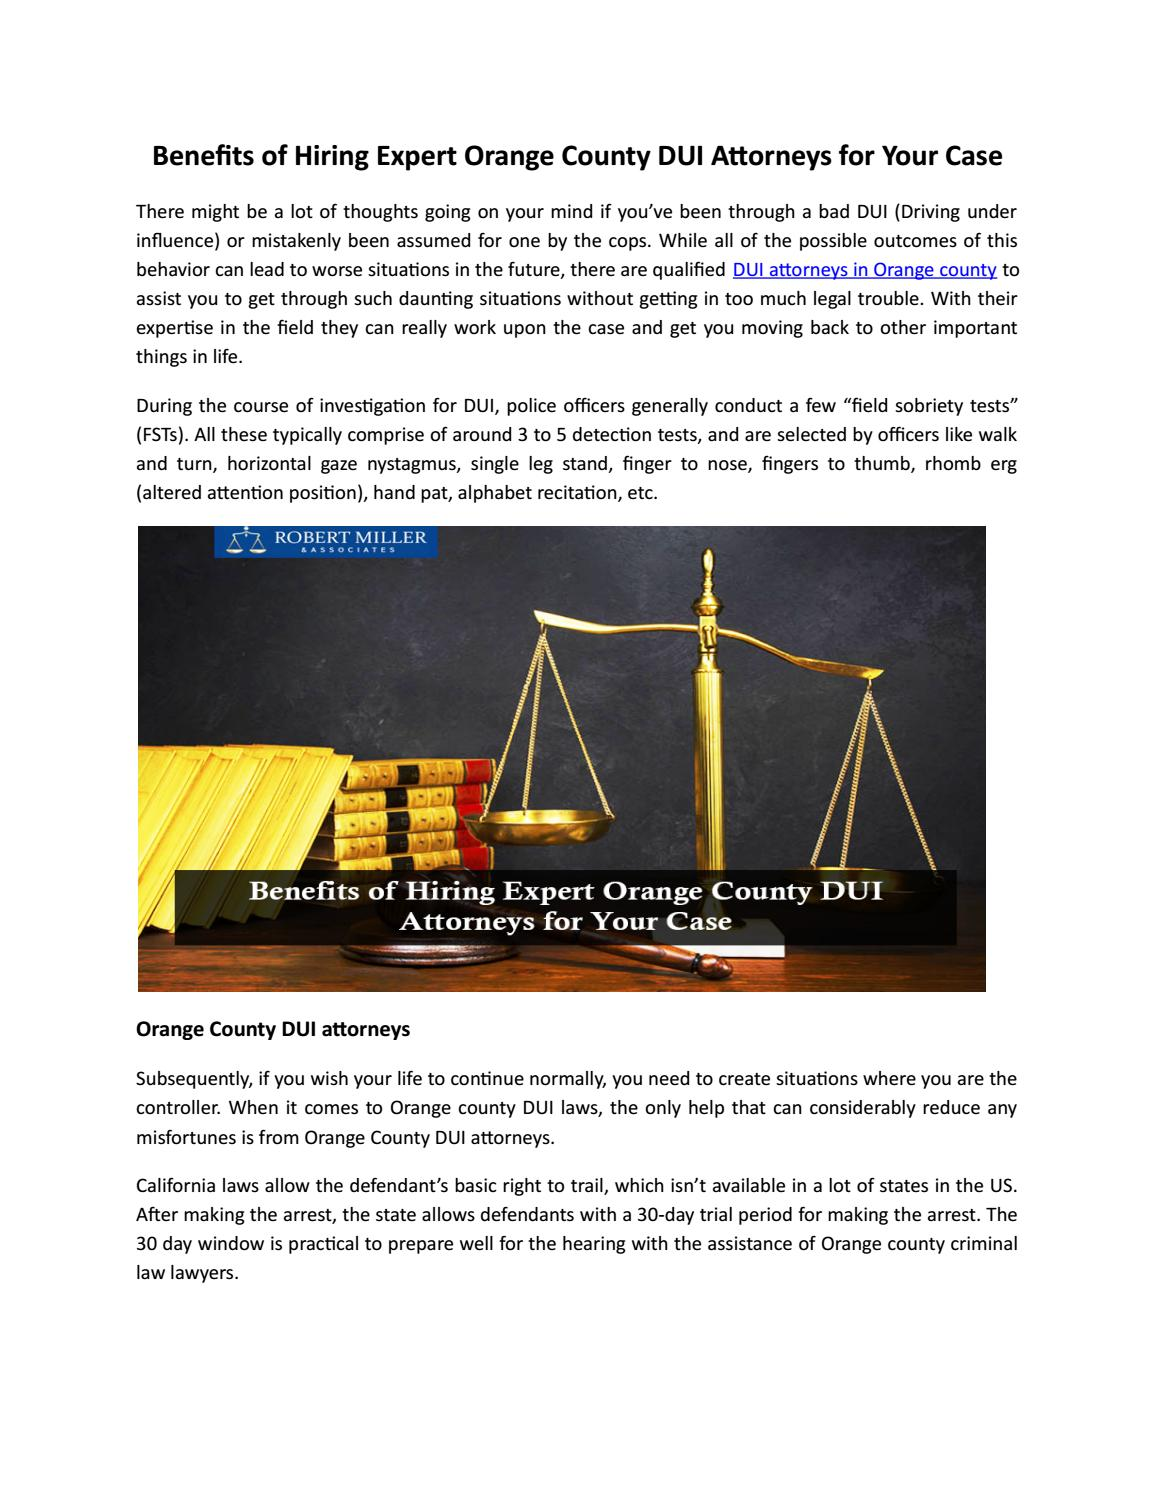 hight resolution of benefits of hiring expert orange county dui attorneys for your case by robert miller associates issuu